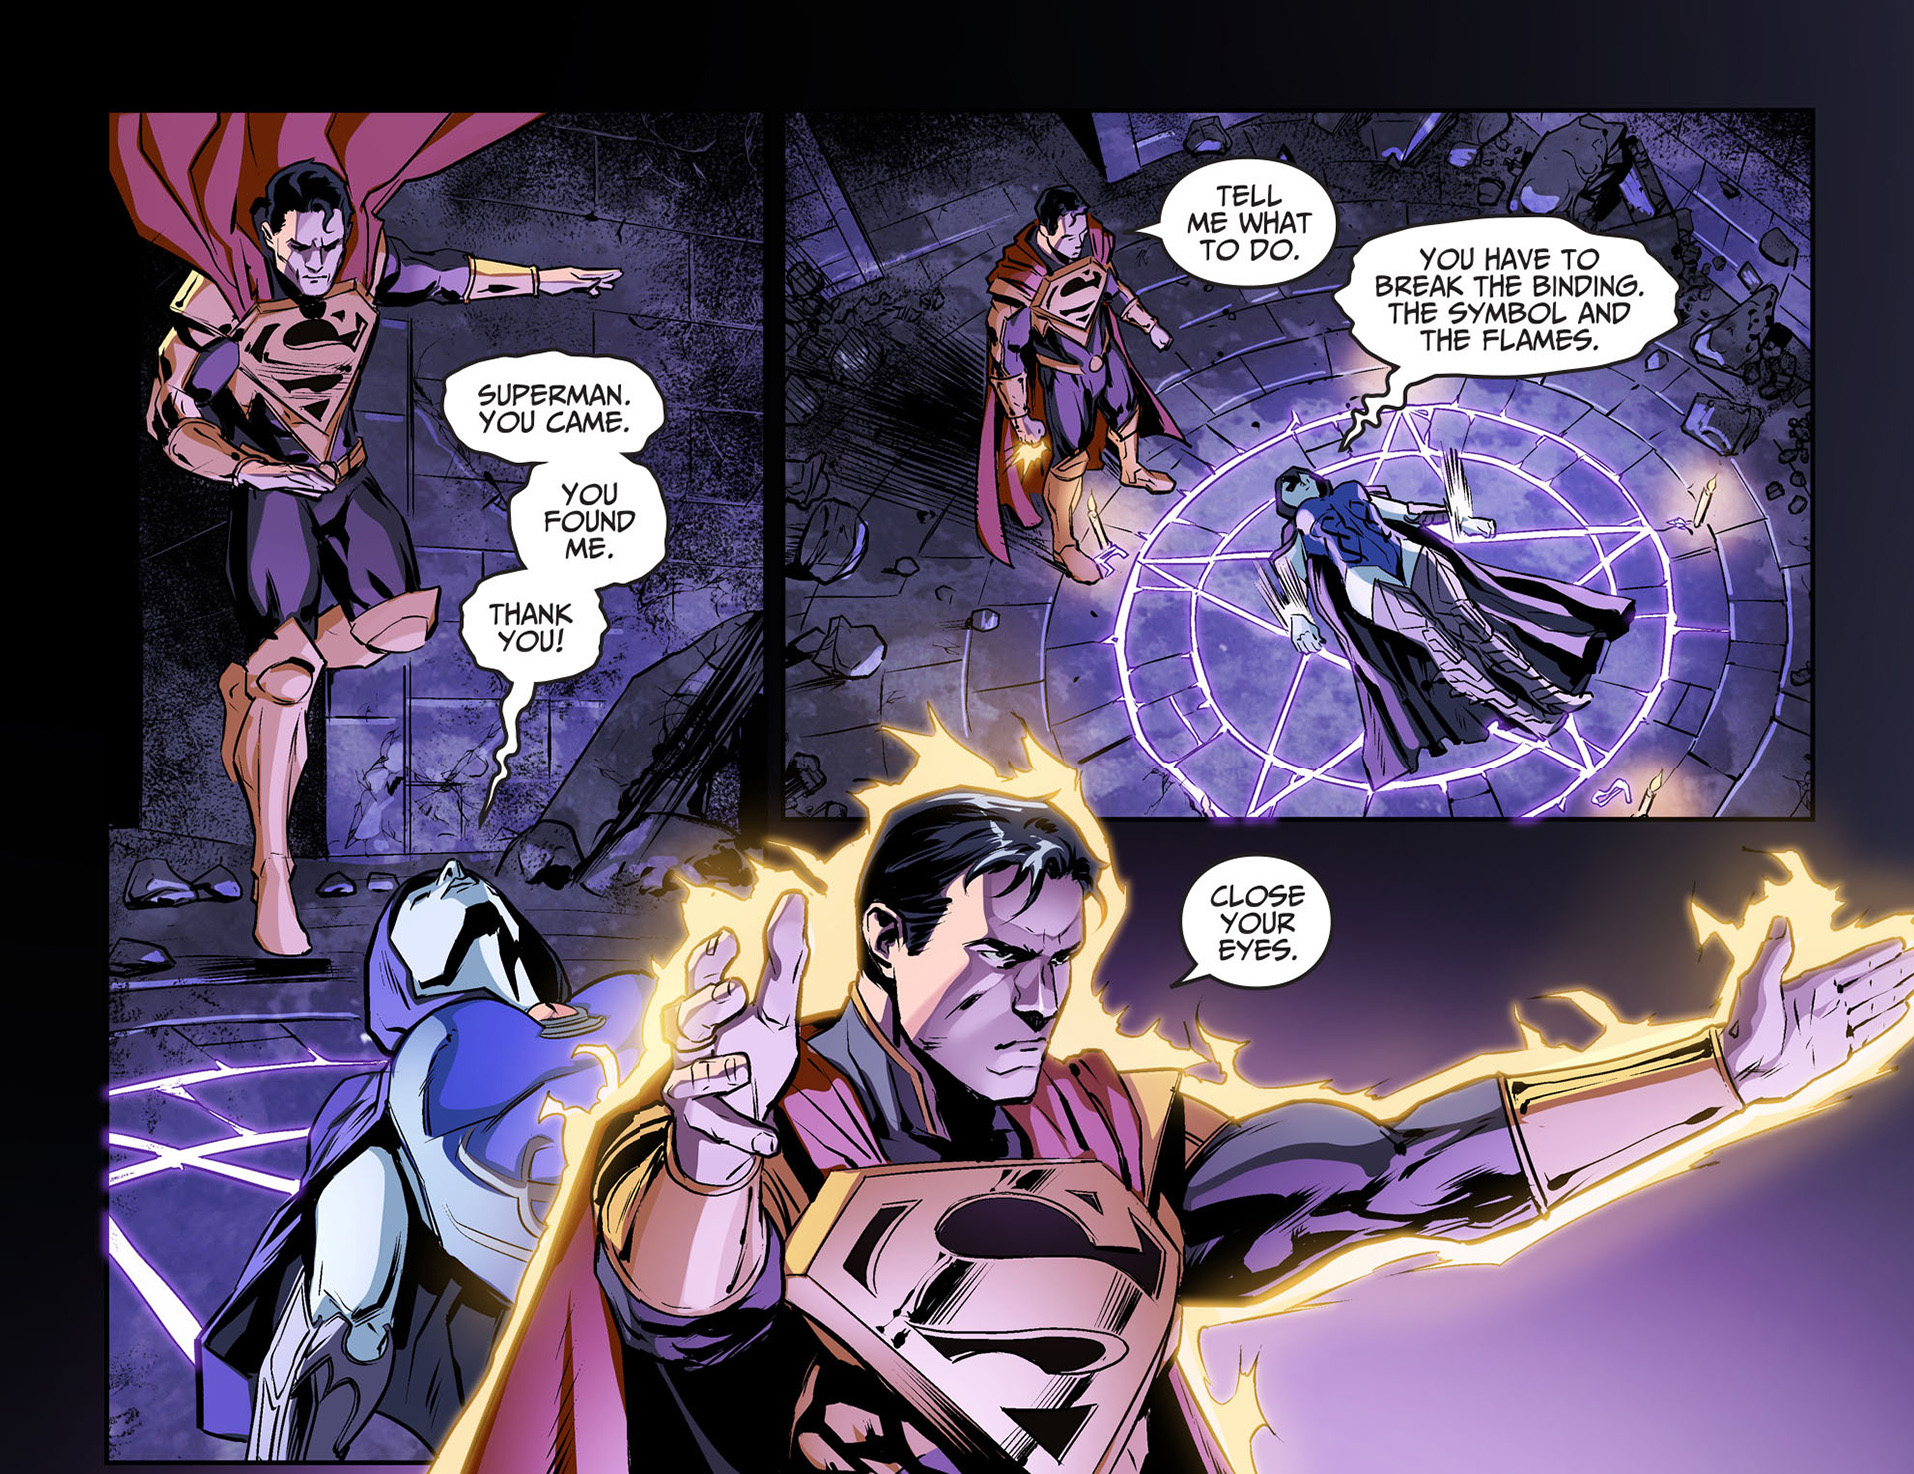 superman rescues raven comicnewbies